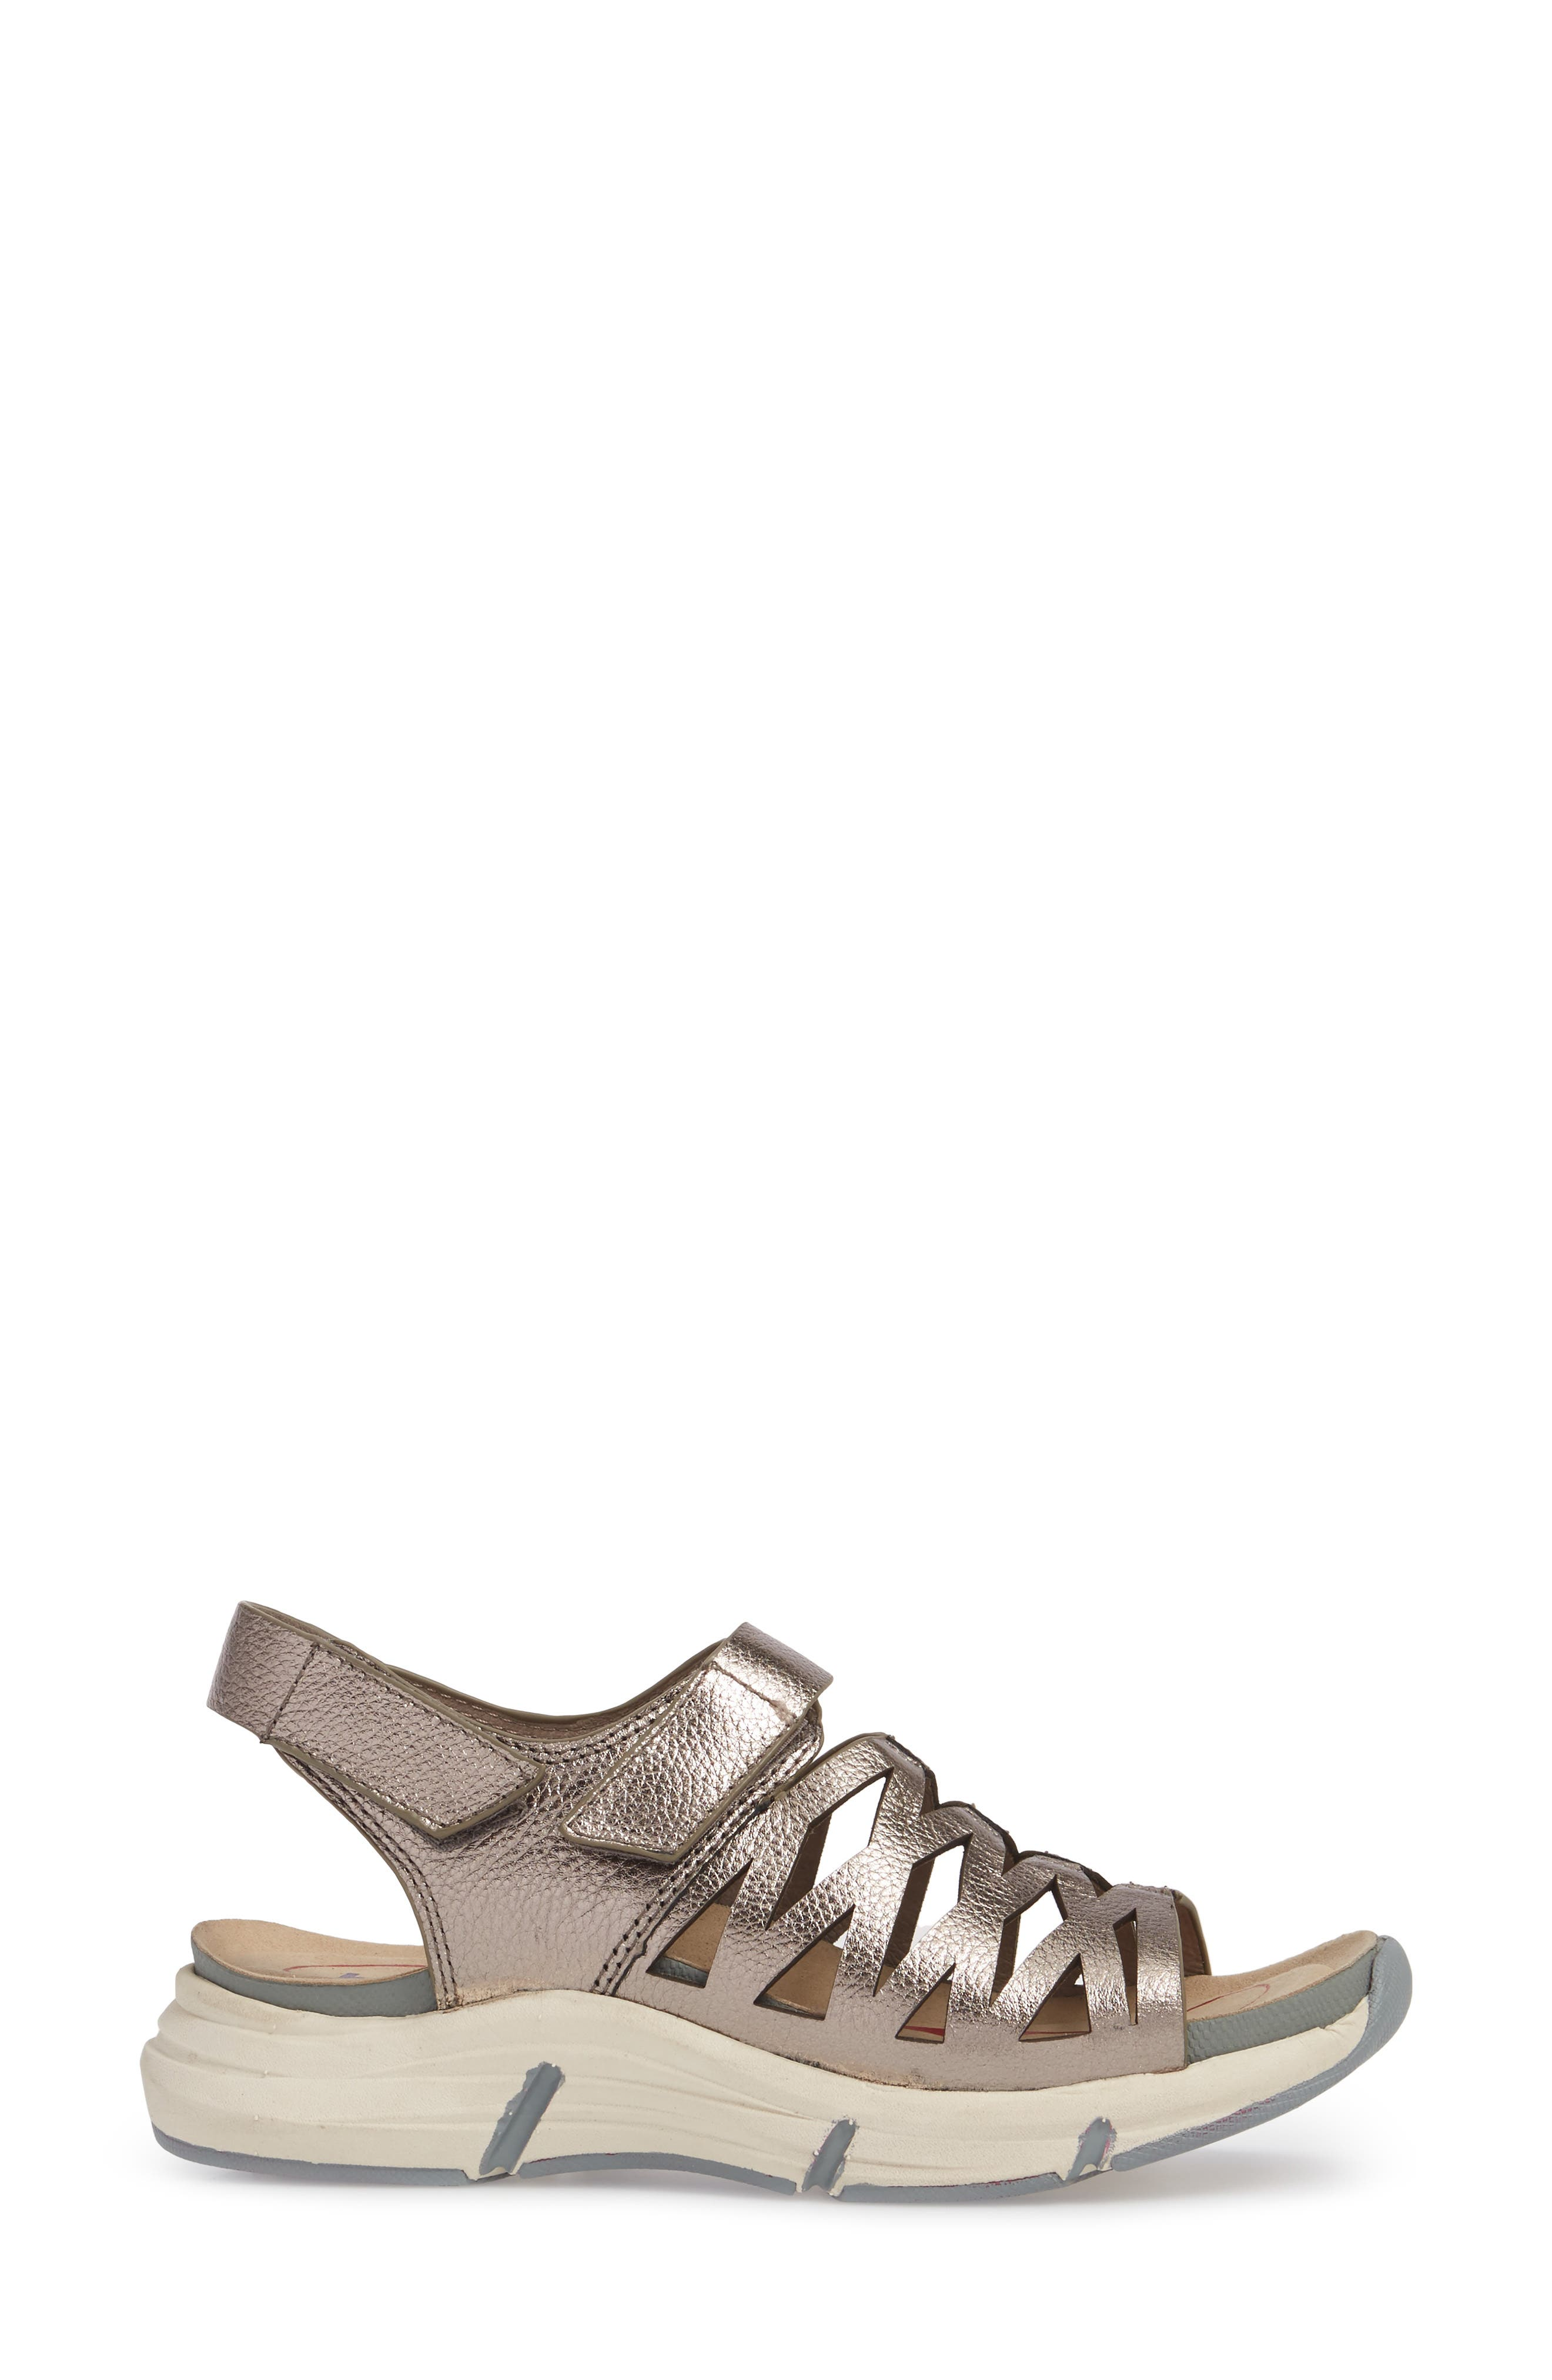 Ossipee Sandal,                             Alternate thumbnail 3, color,                             Anthracite Leather